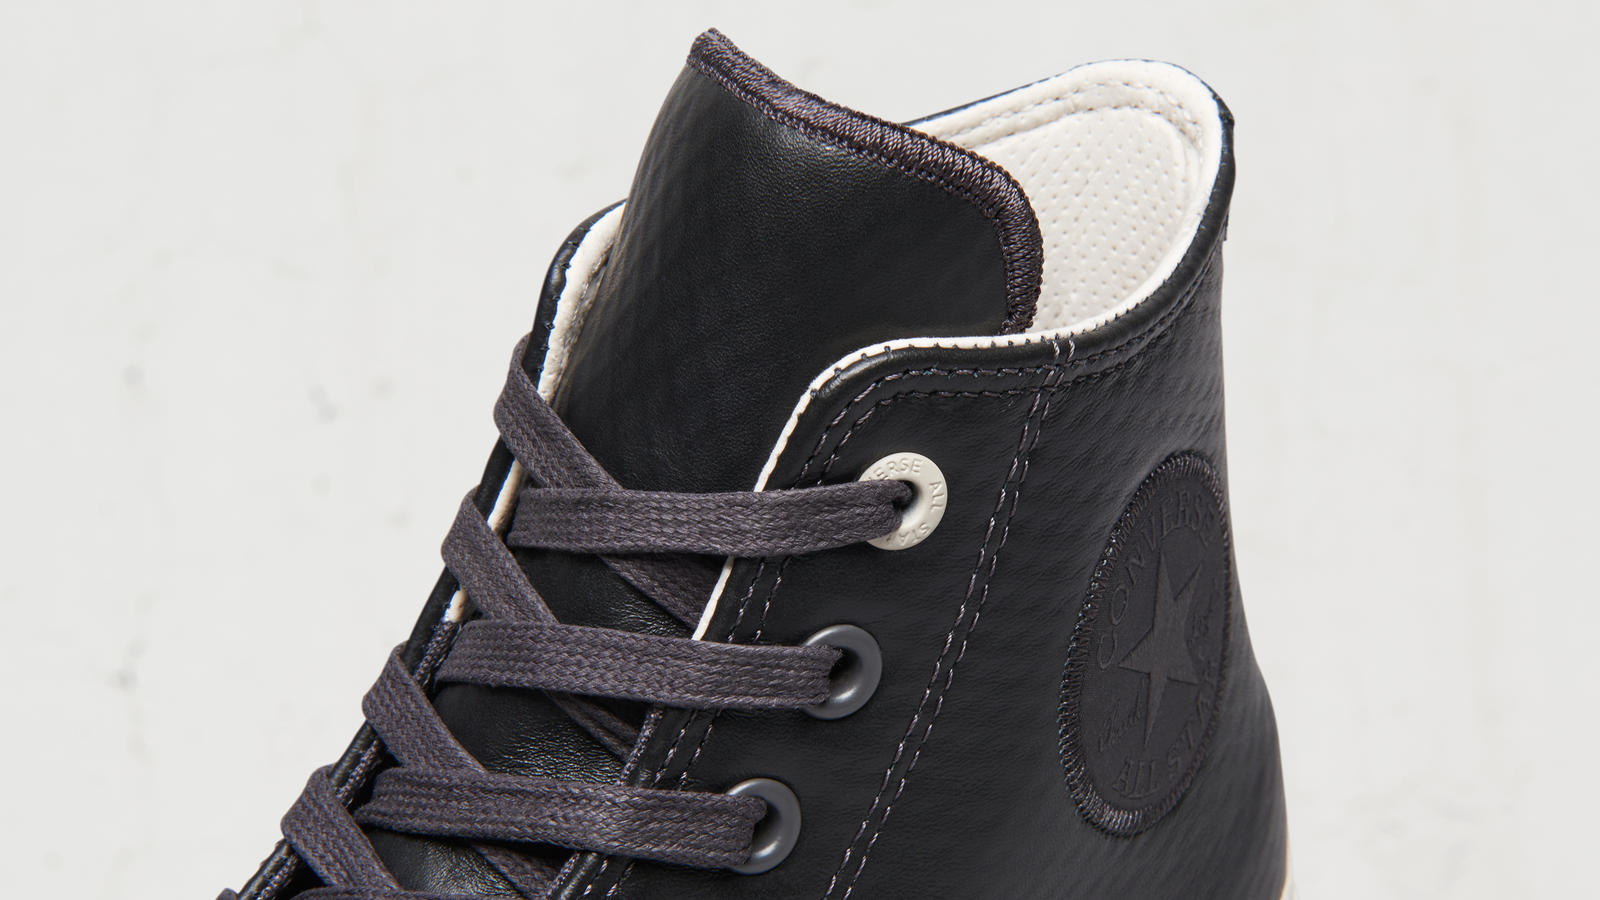 Converse Chuck II Mesh Backed Leather High Top